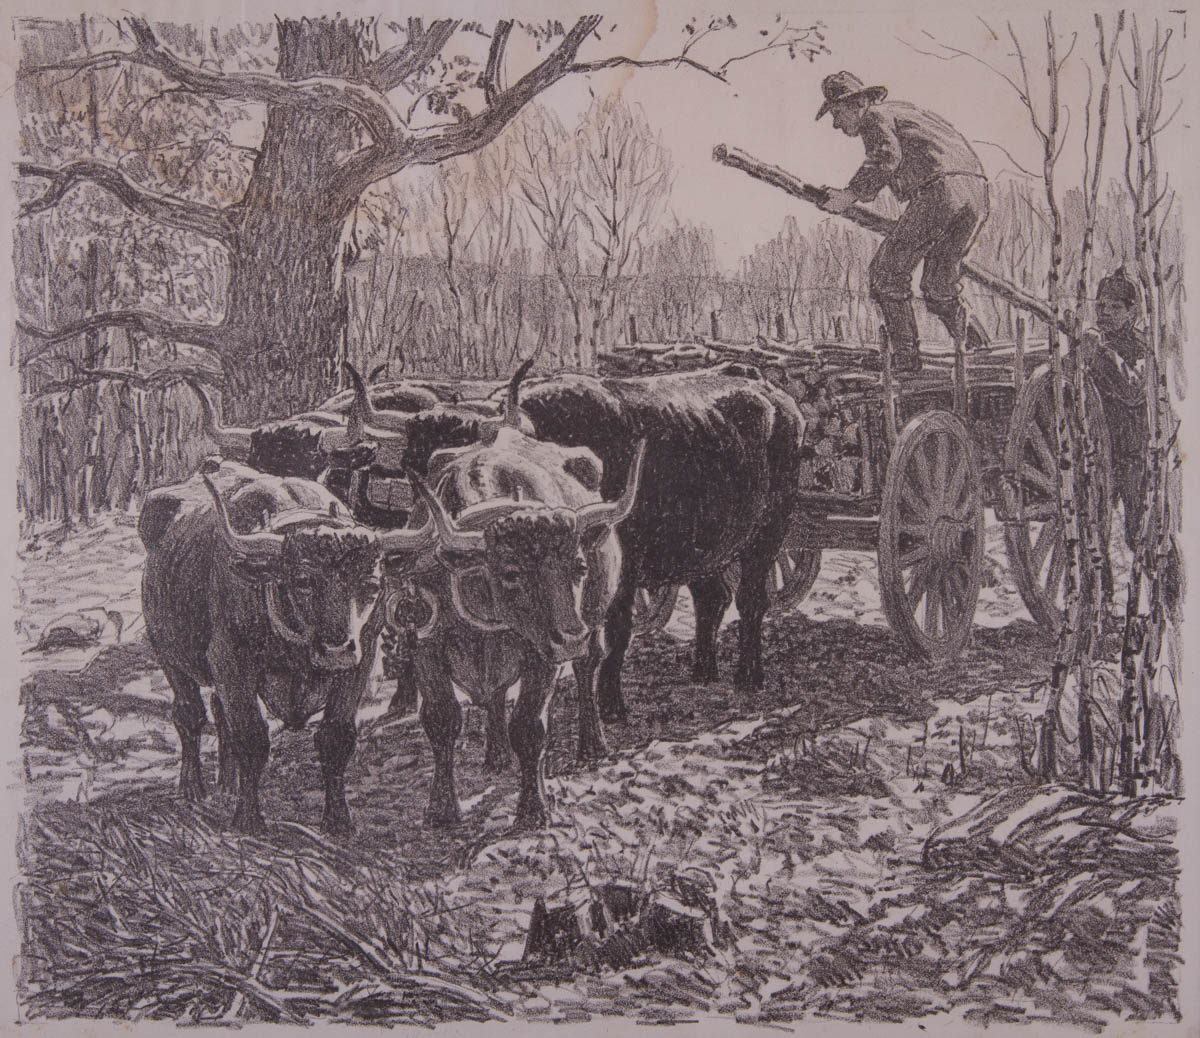 Untitled [Farmers loading wood into ox cart]